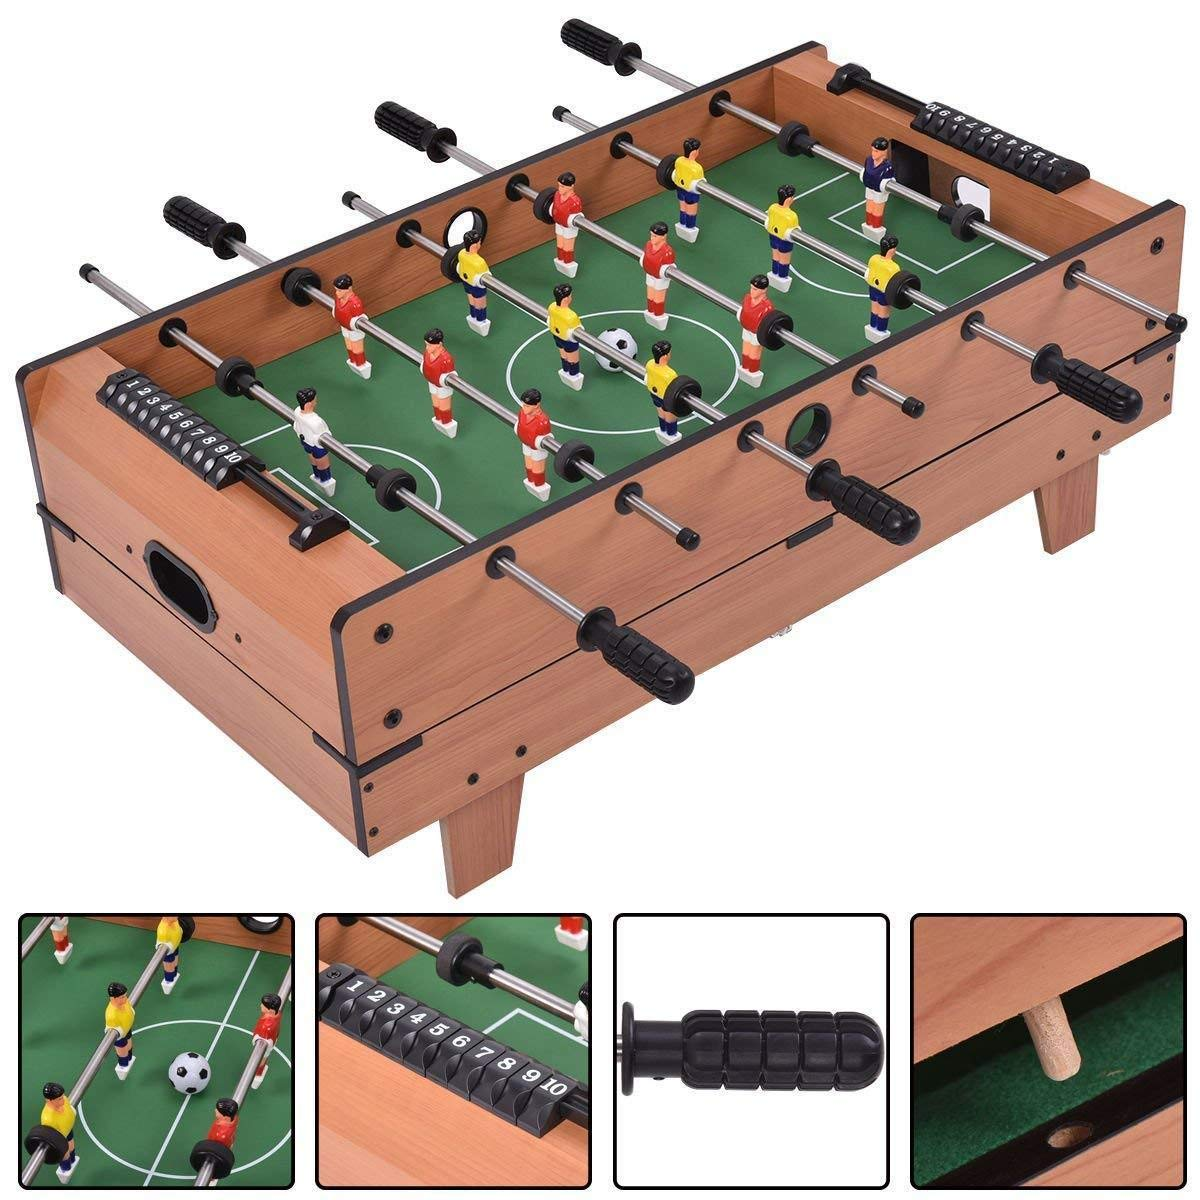 KCHEX>>>4 in 1 Multi Game Hockey Tennis Football Pool Table Billiard Foosball Gift>This 4-in-1 Swivel Table is Perfect Switching Back and Forth Between Sports. Easily Play Hockey, Billiards, Table